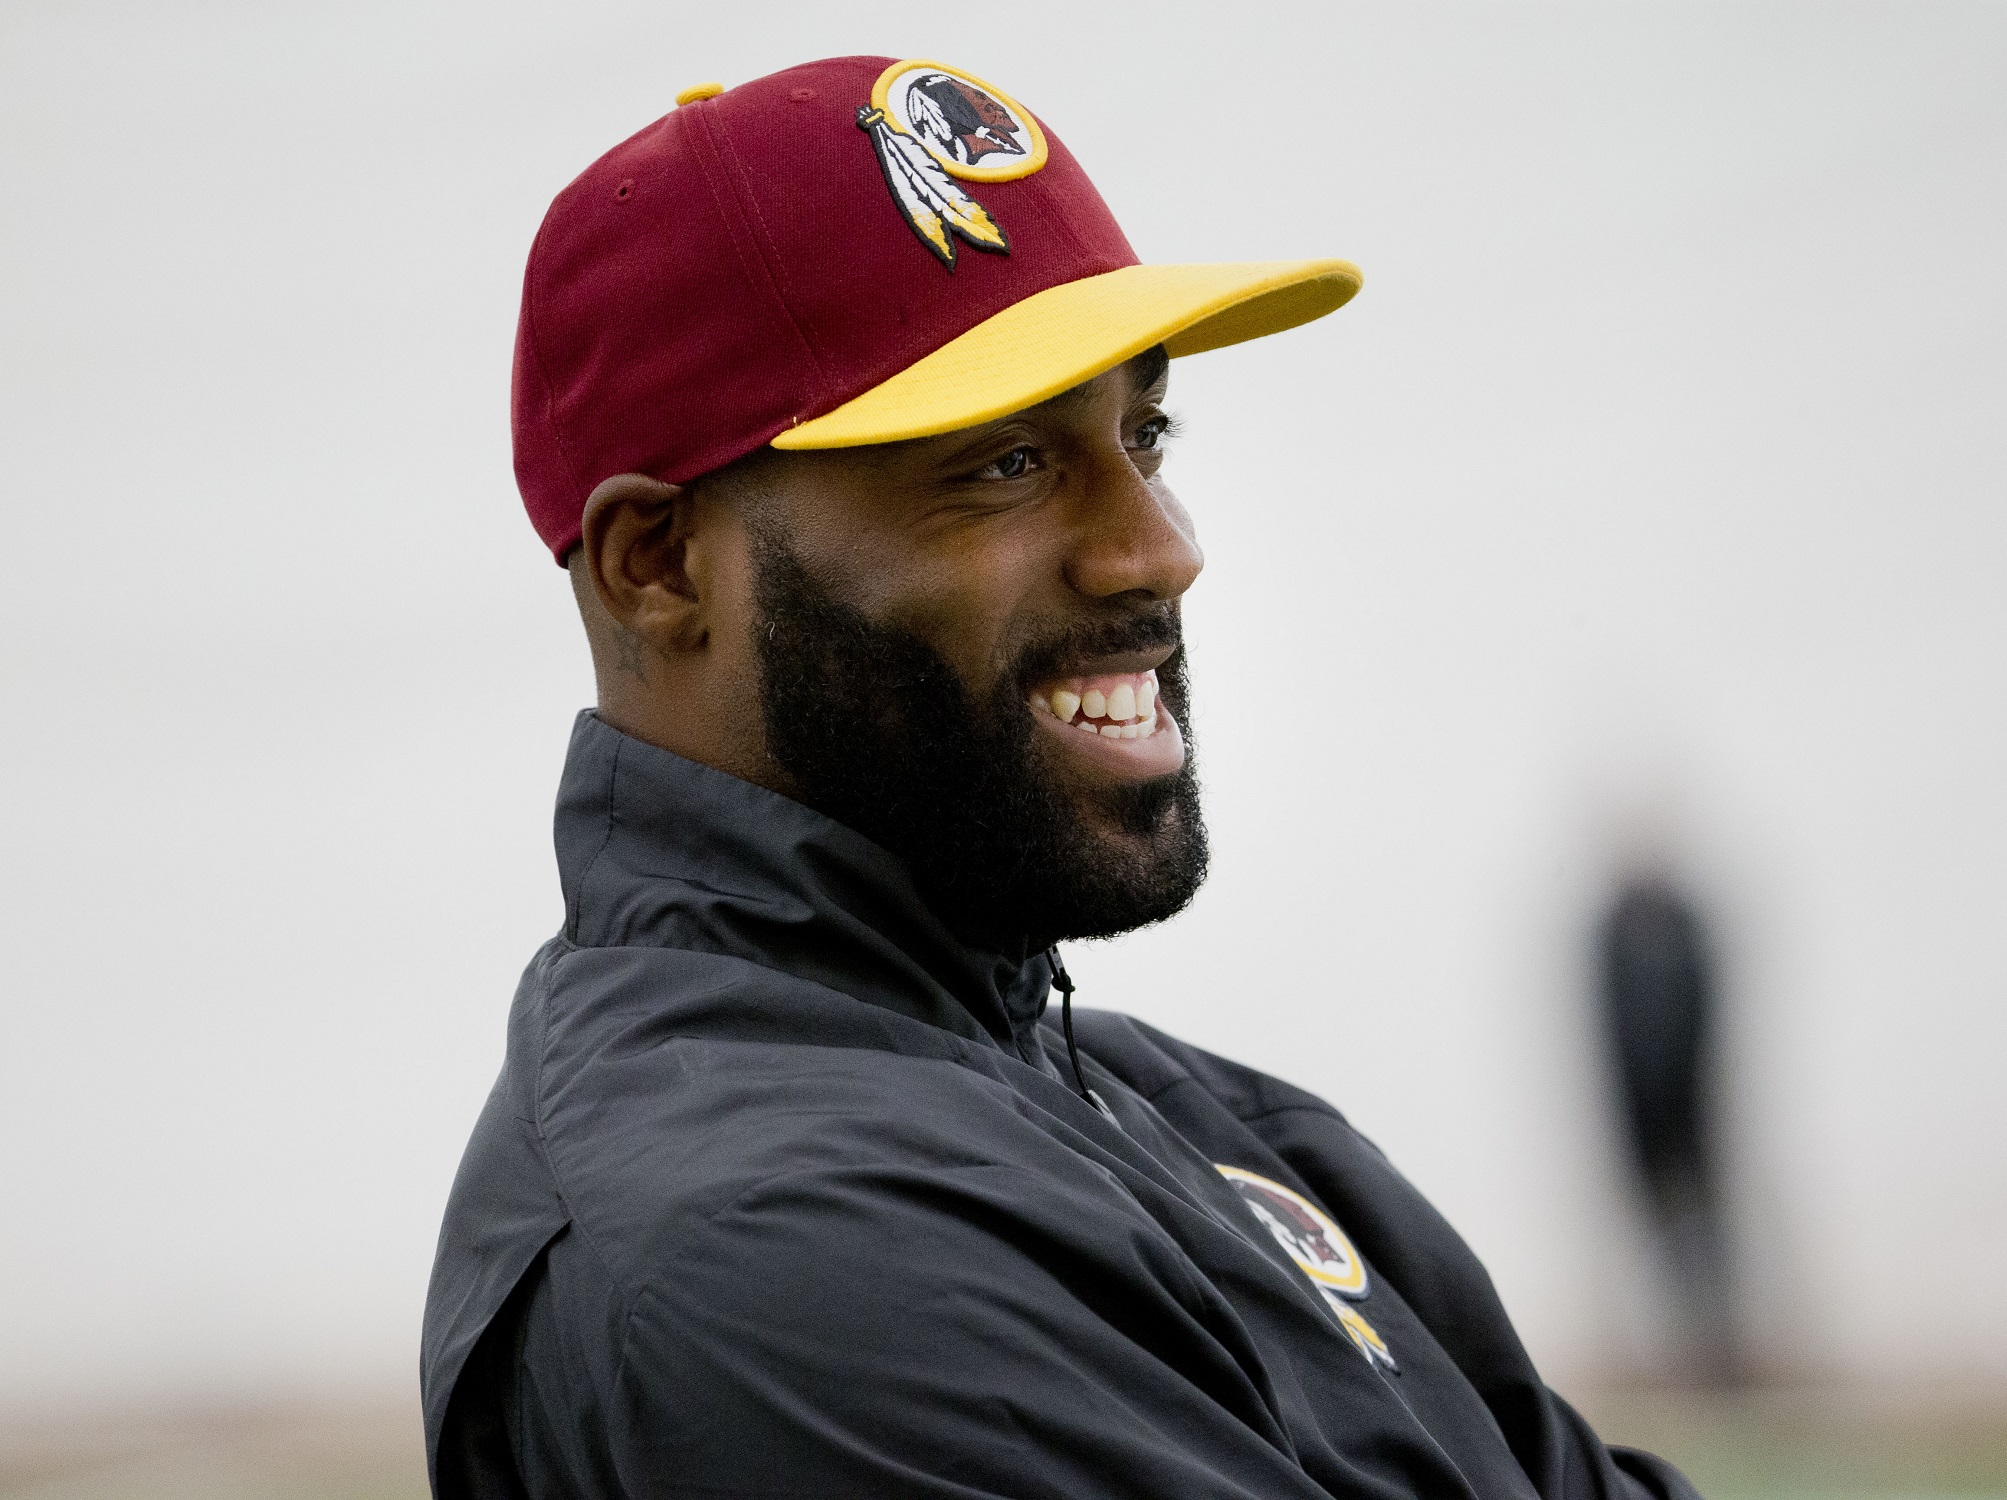 DeAngelo Hall returns from injury, wants his job back